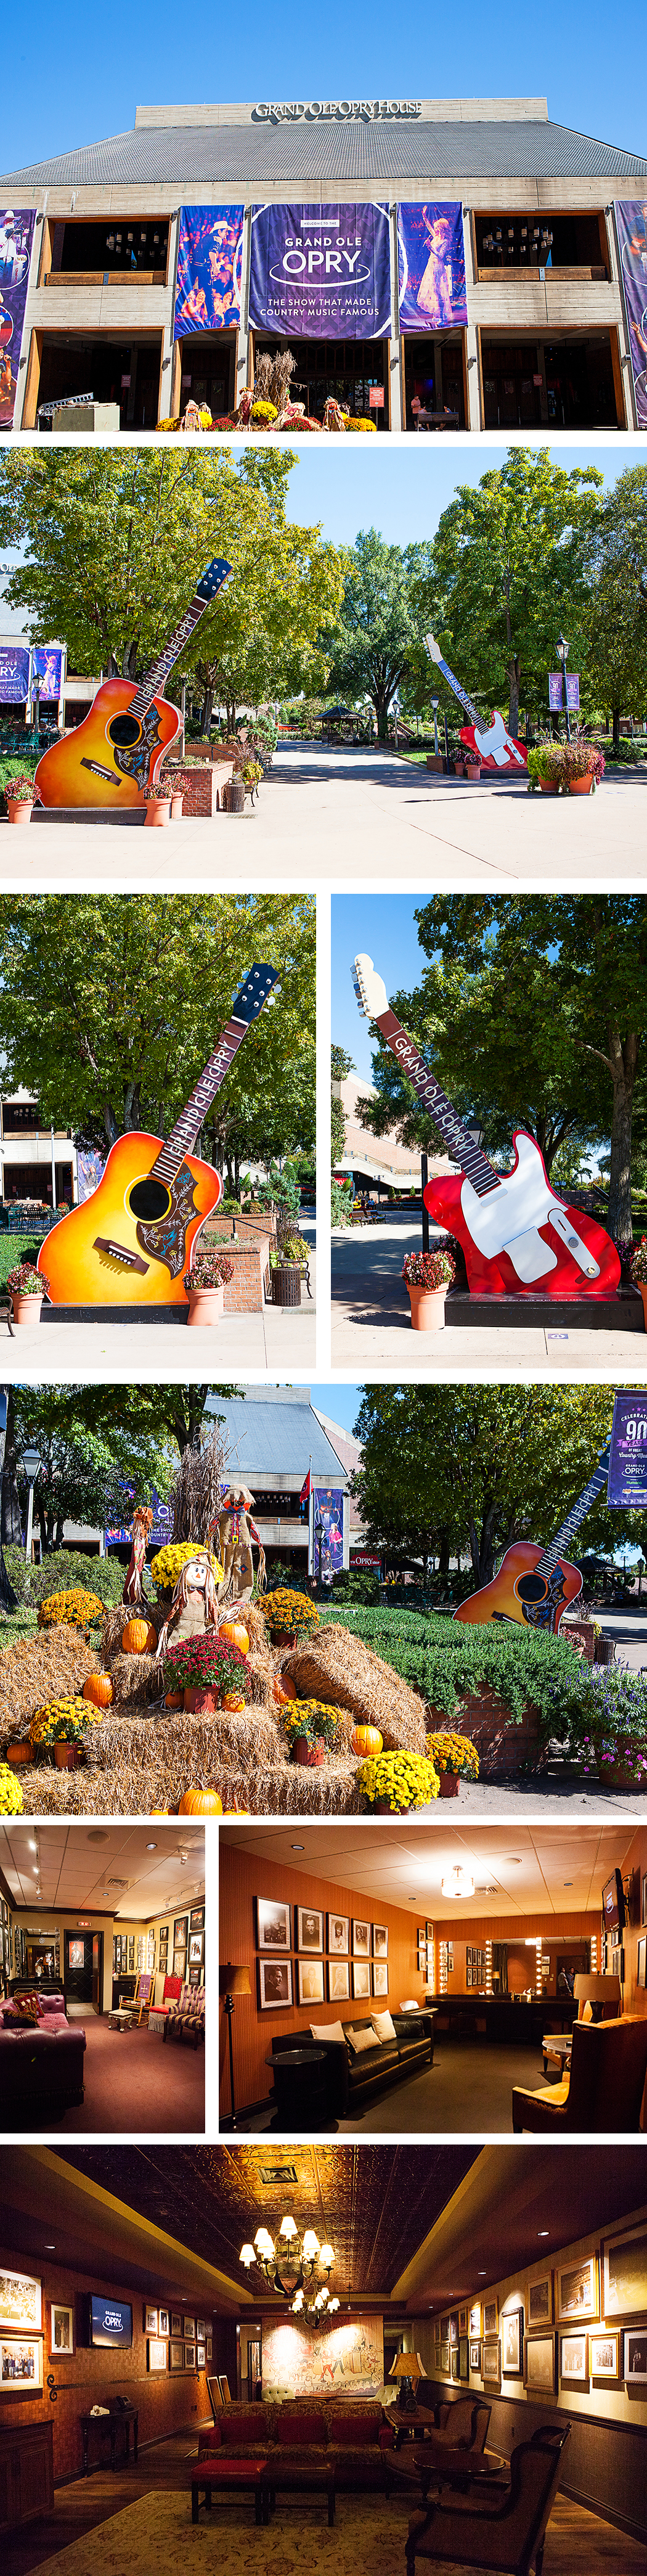 Grand Ole Opry | Nashville, Tennessee